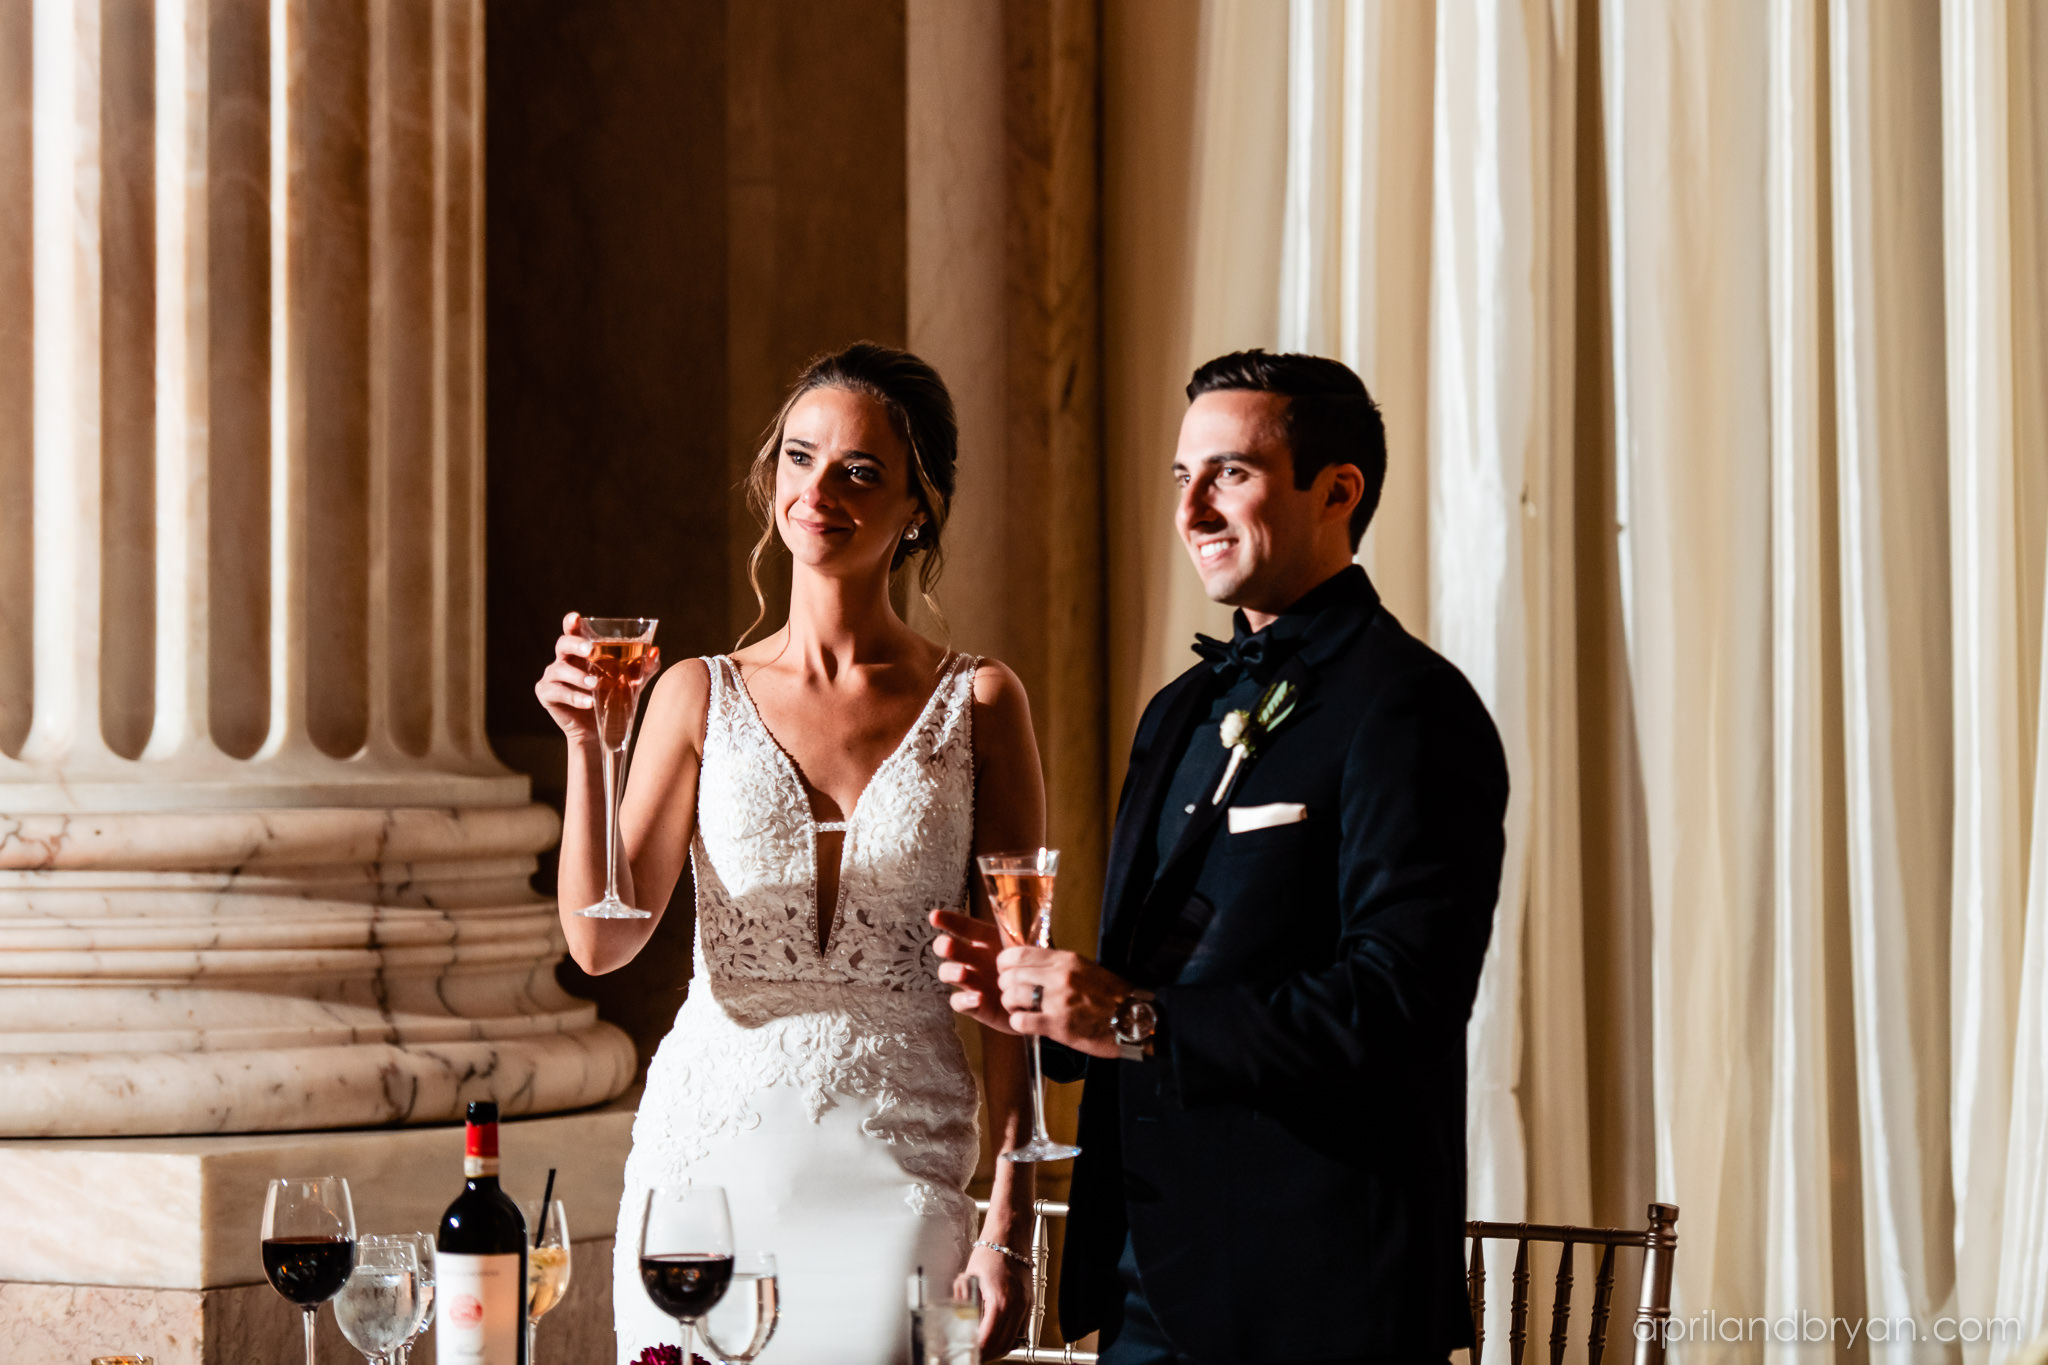 A toast at the franklin Institute in Philadelphia sets the tone for a beautiful moment captured by April & Bryan Photography. Featured on Dream Weddings.